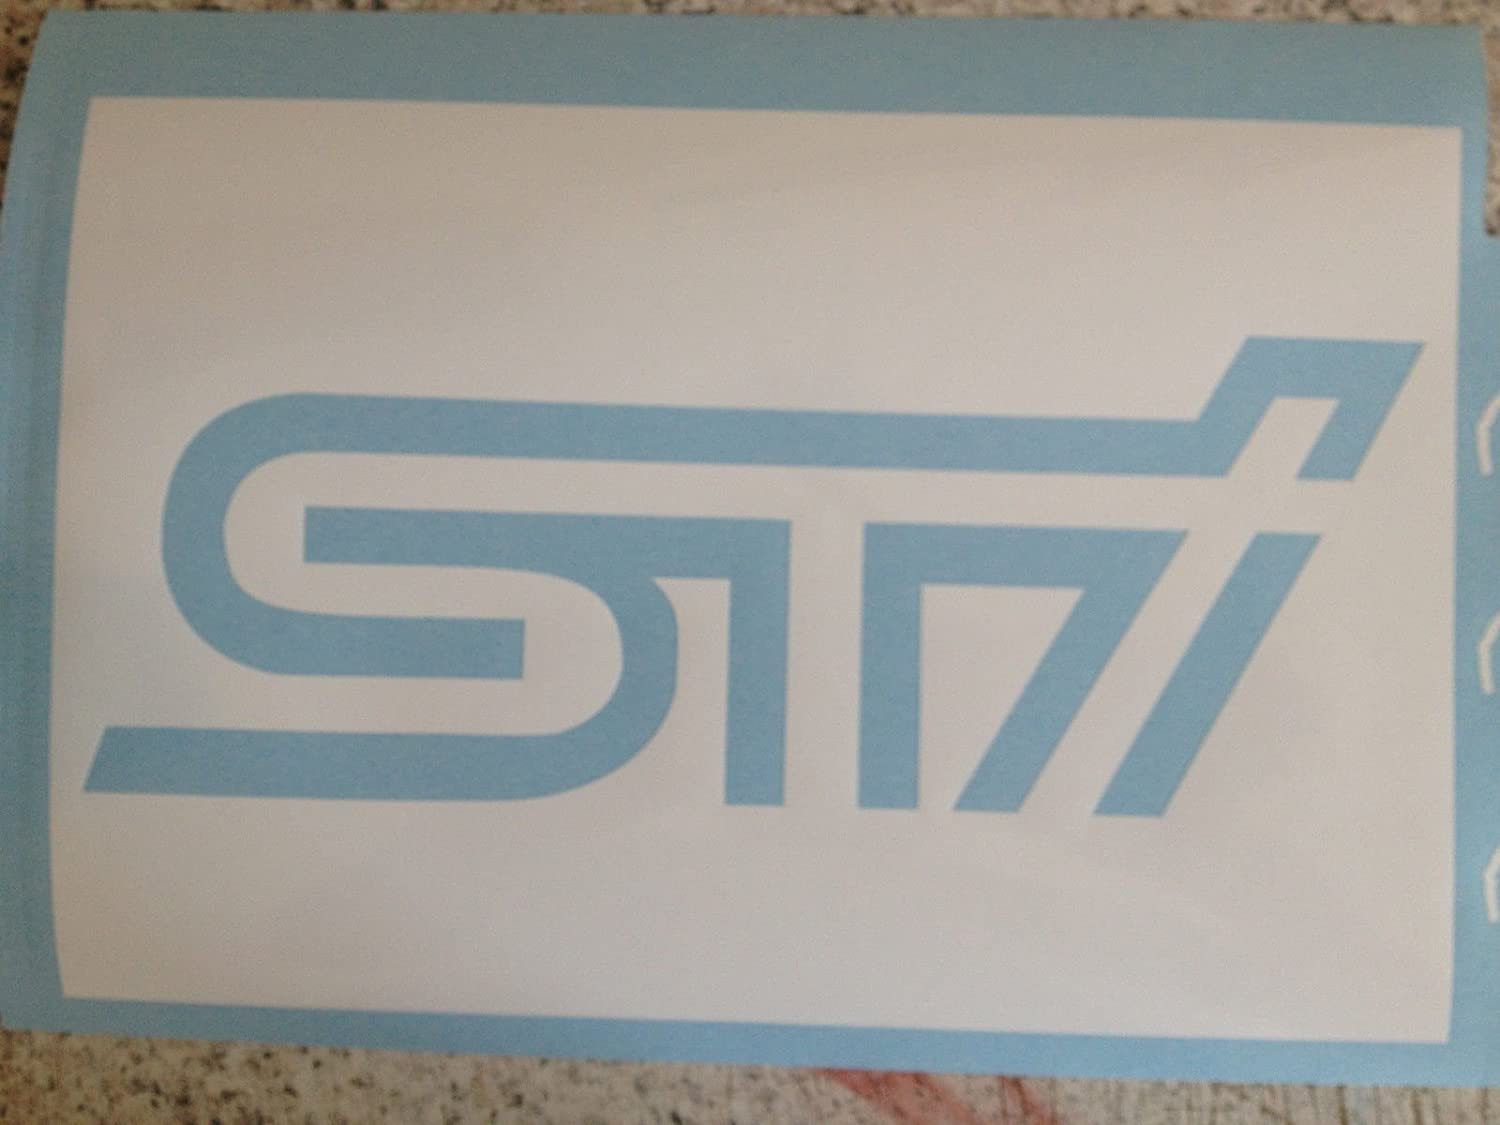 Subar Impreza WRX STI Ladeluftkü hler Schablone Spray Your Own STI Logo SUBAR IMPREZA WRX STI INTERCOOLER STENCIL SPRAY YOUR OWN STI LOGO